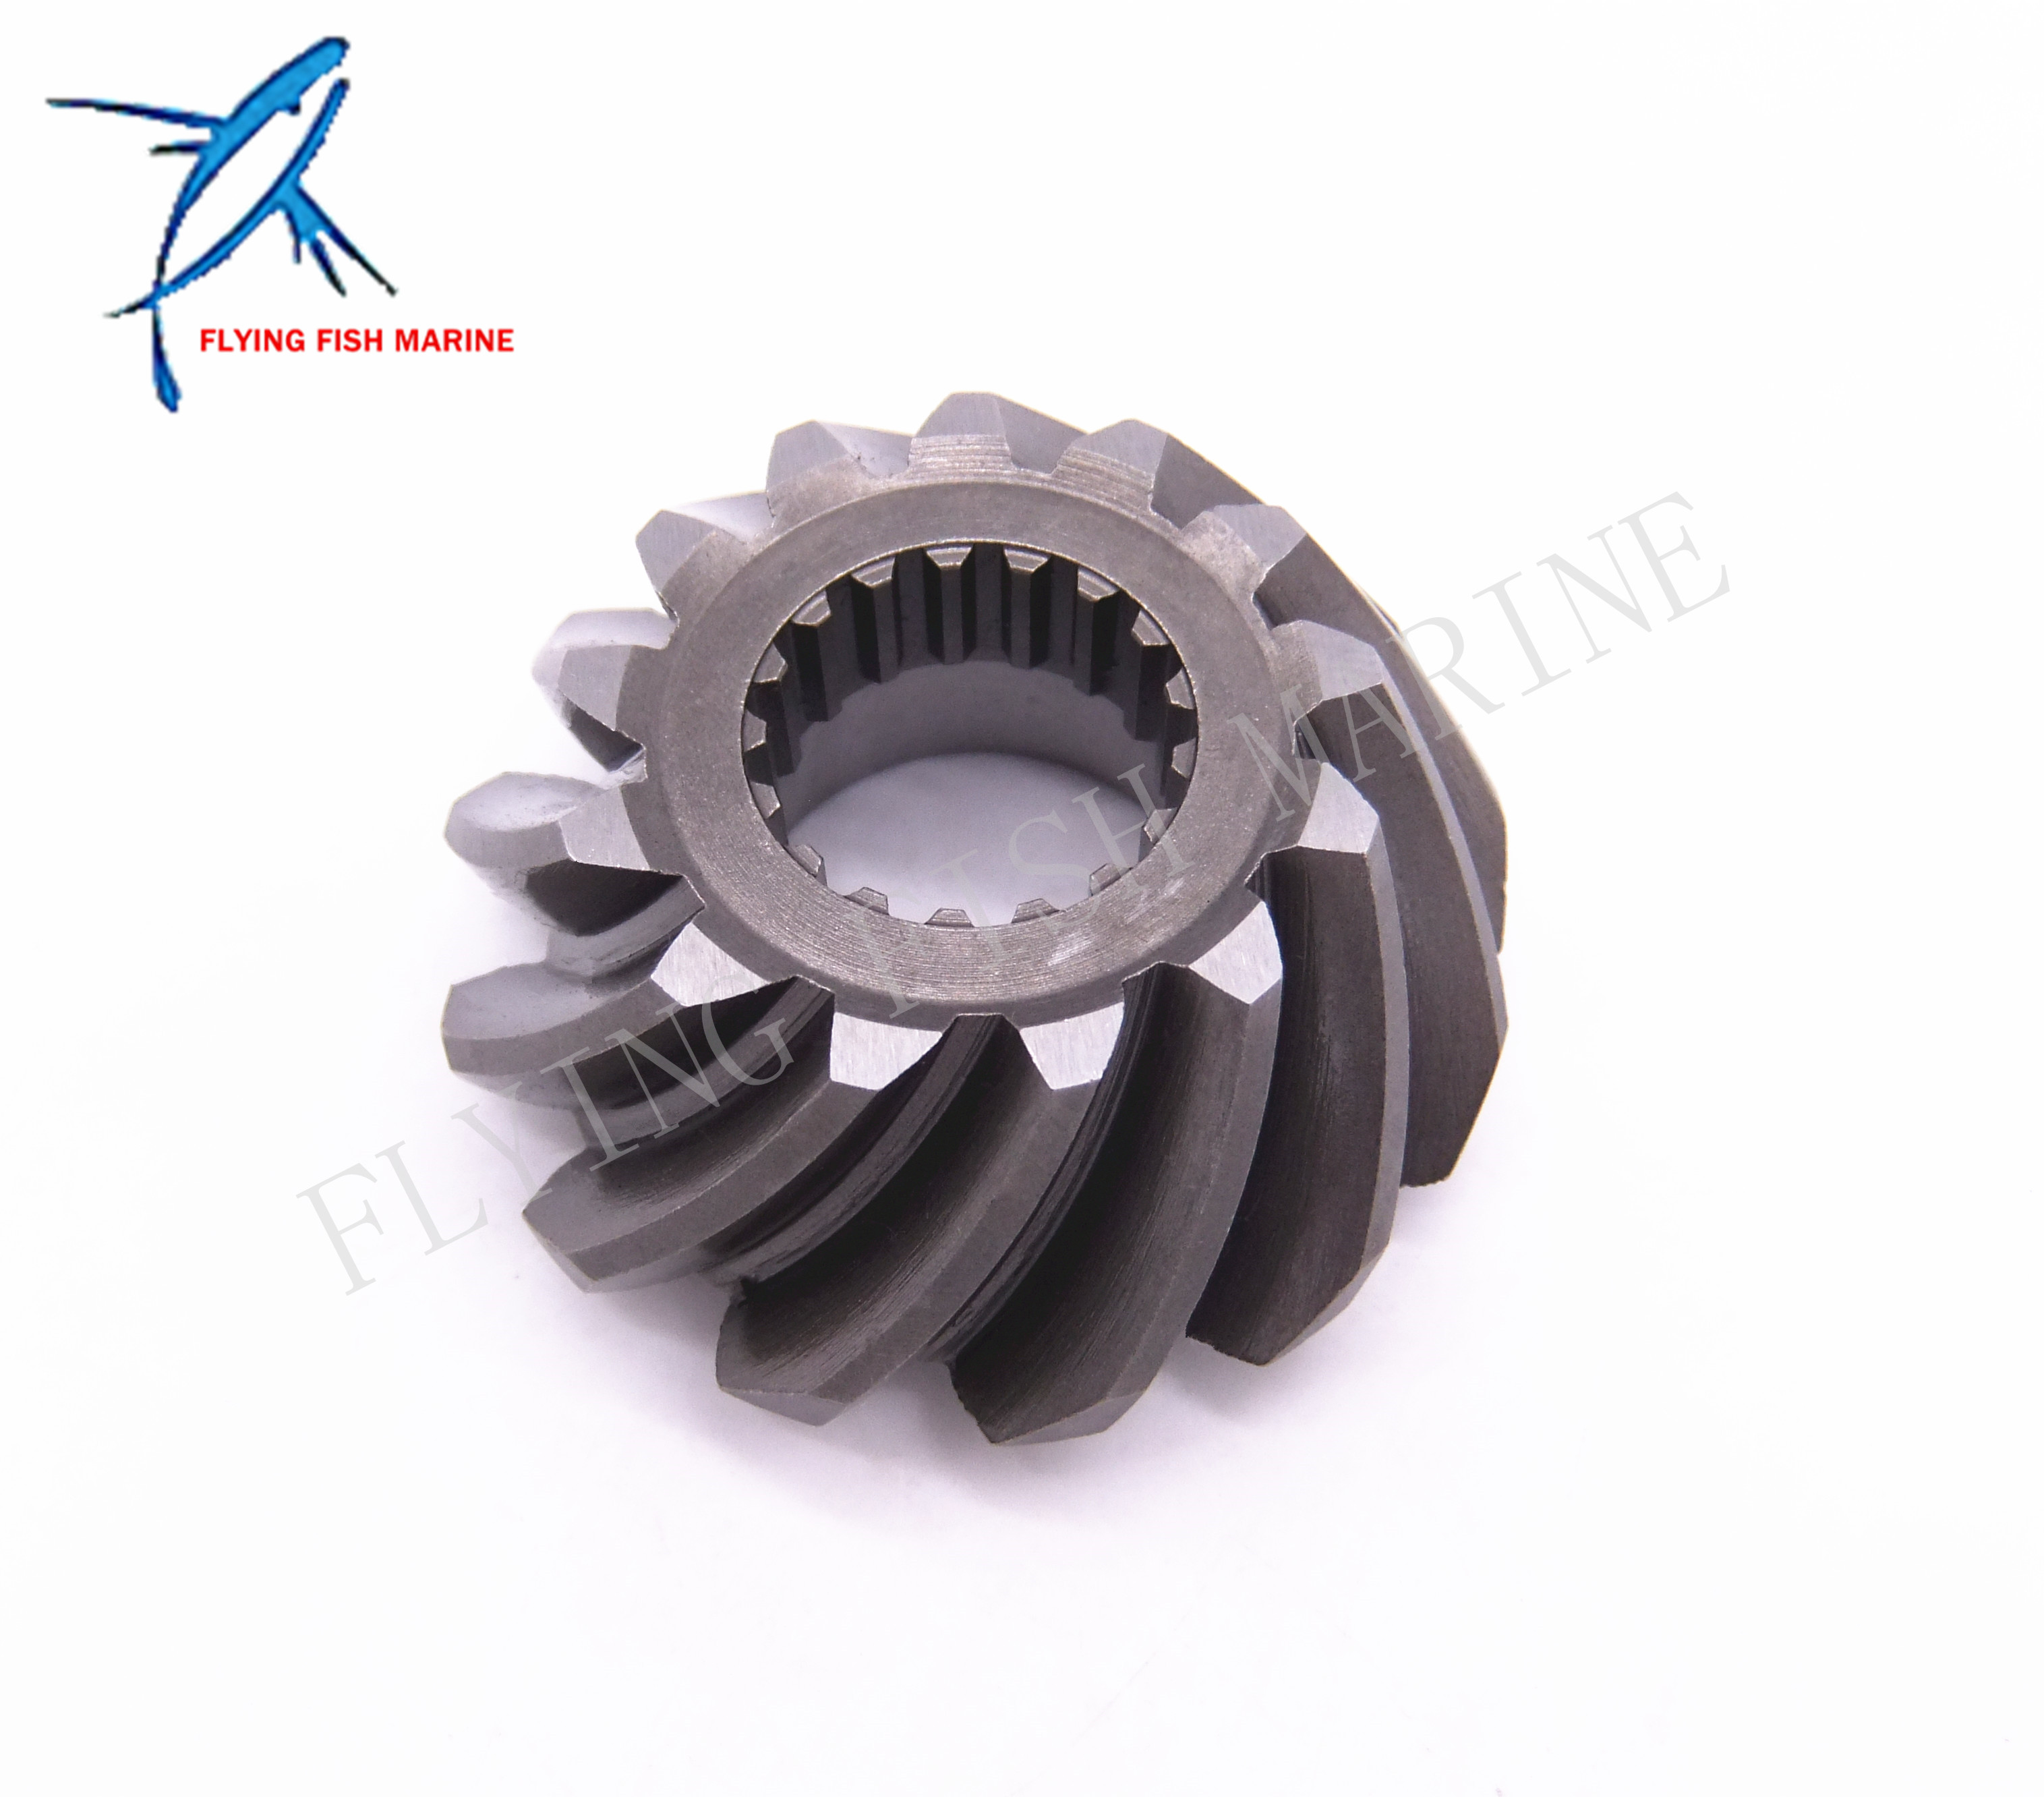 Automobiles & Motorcycles Atv,rv,boat & Other Vehicle T85-04000605 Pinion Gear For Parsun Hdx Outboard Engine 2-stroke T75 T85 T90 Boat Motor Street Price